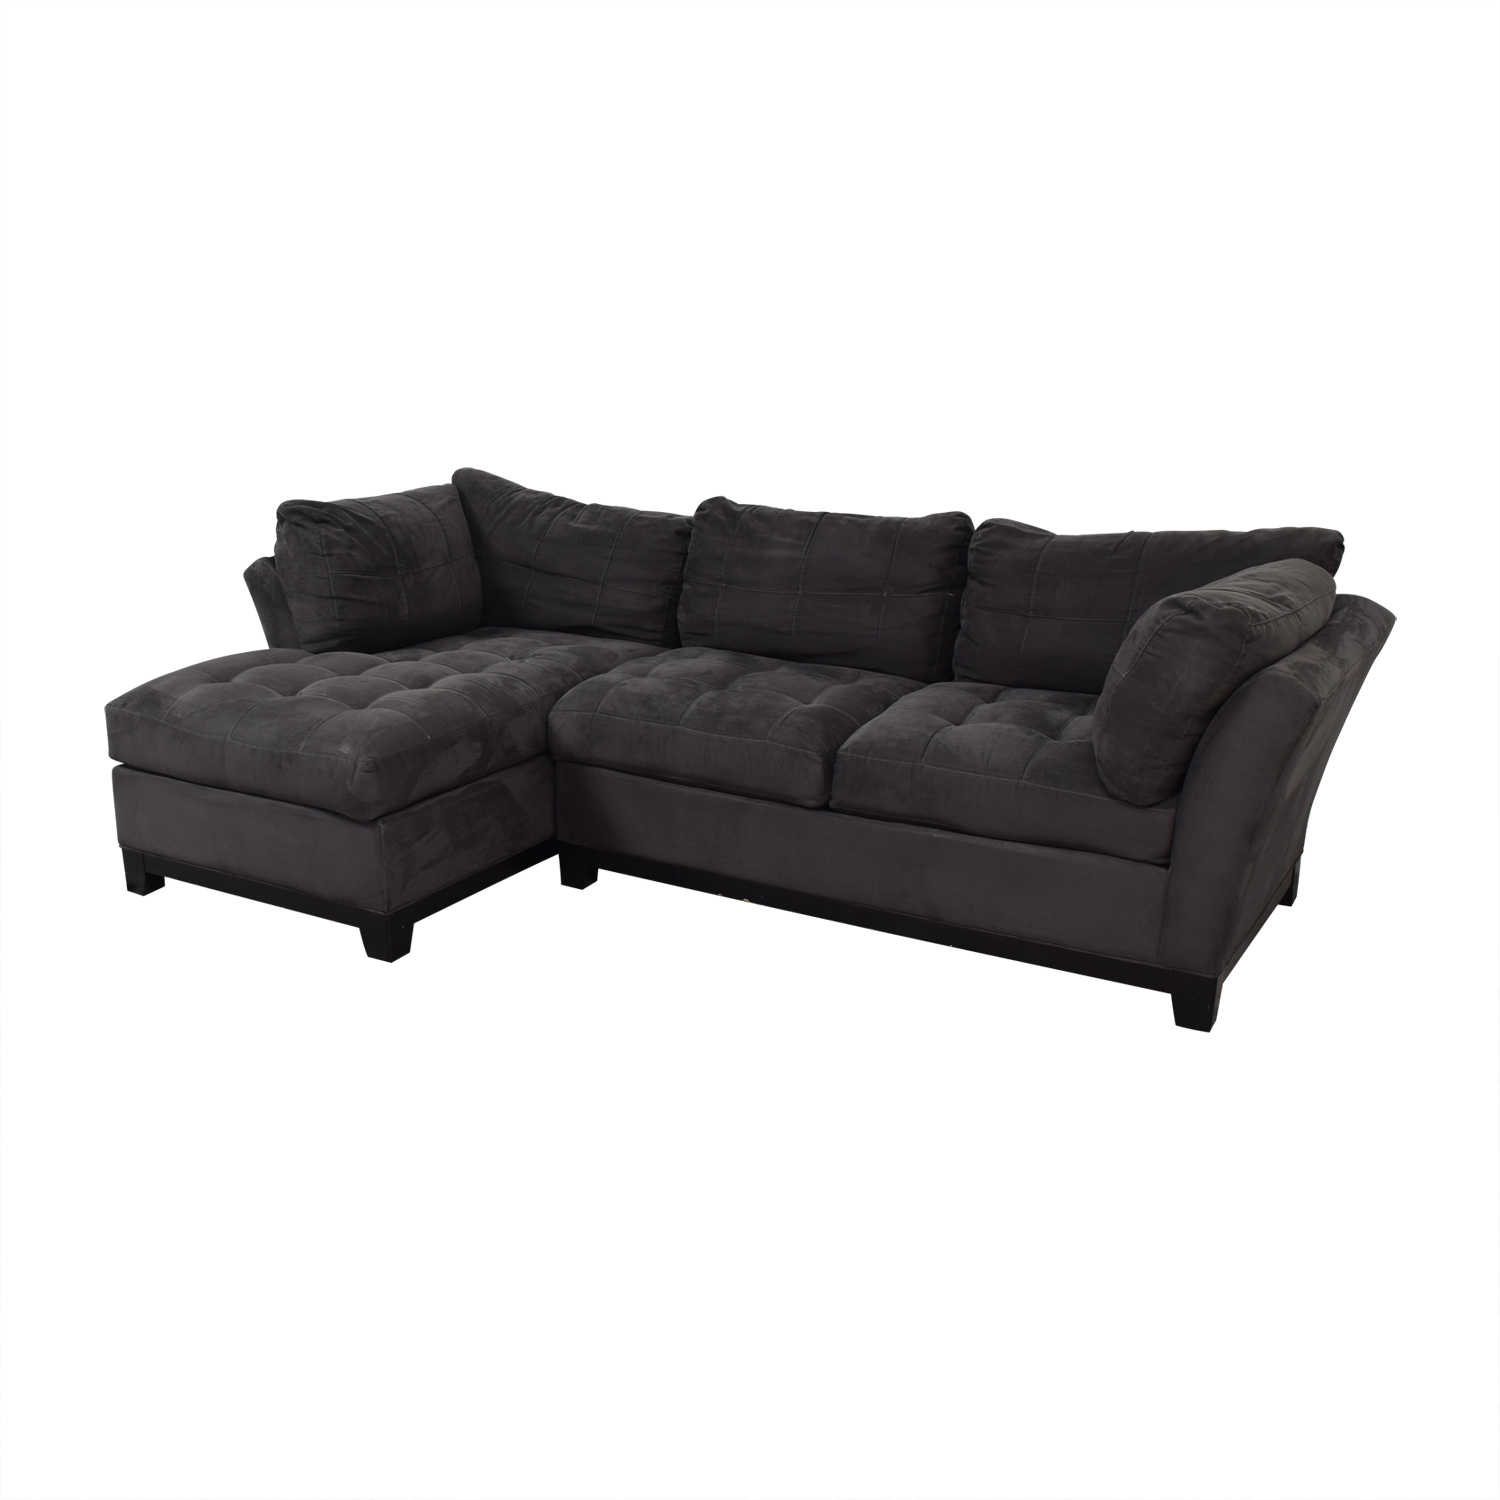 Raymour & Flanigan Raymour & Flanigan Cindy Crawford Grey Semi Tufted Chaise Sectional coupon